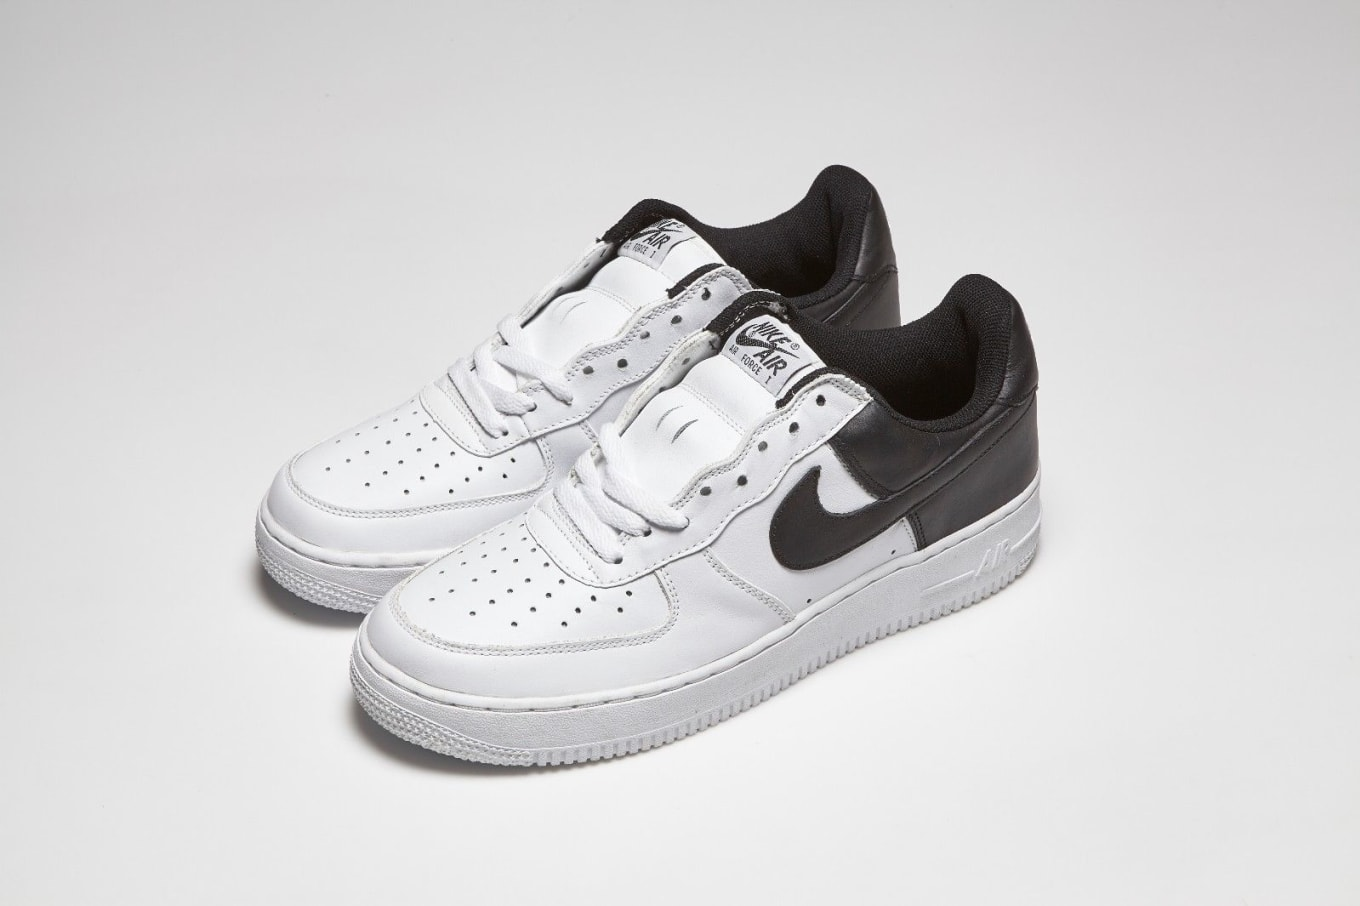 best service 1a453 438f3 Nike Air Force 1 Low Orca